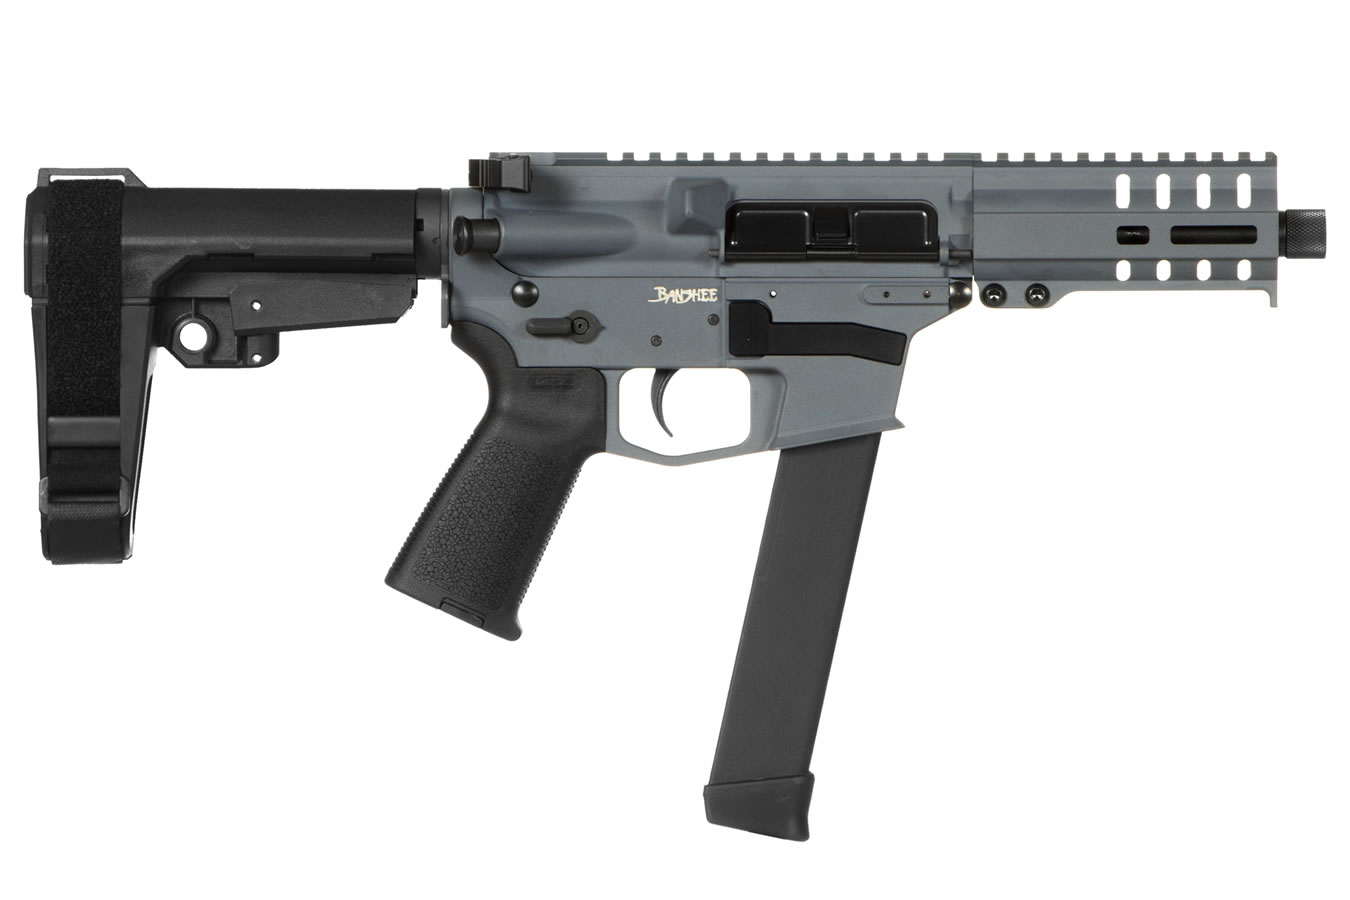 BANSHEE 300 MKGS 9MM AR PISTOL WITH BRACE